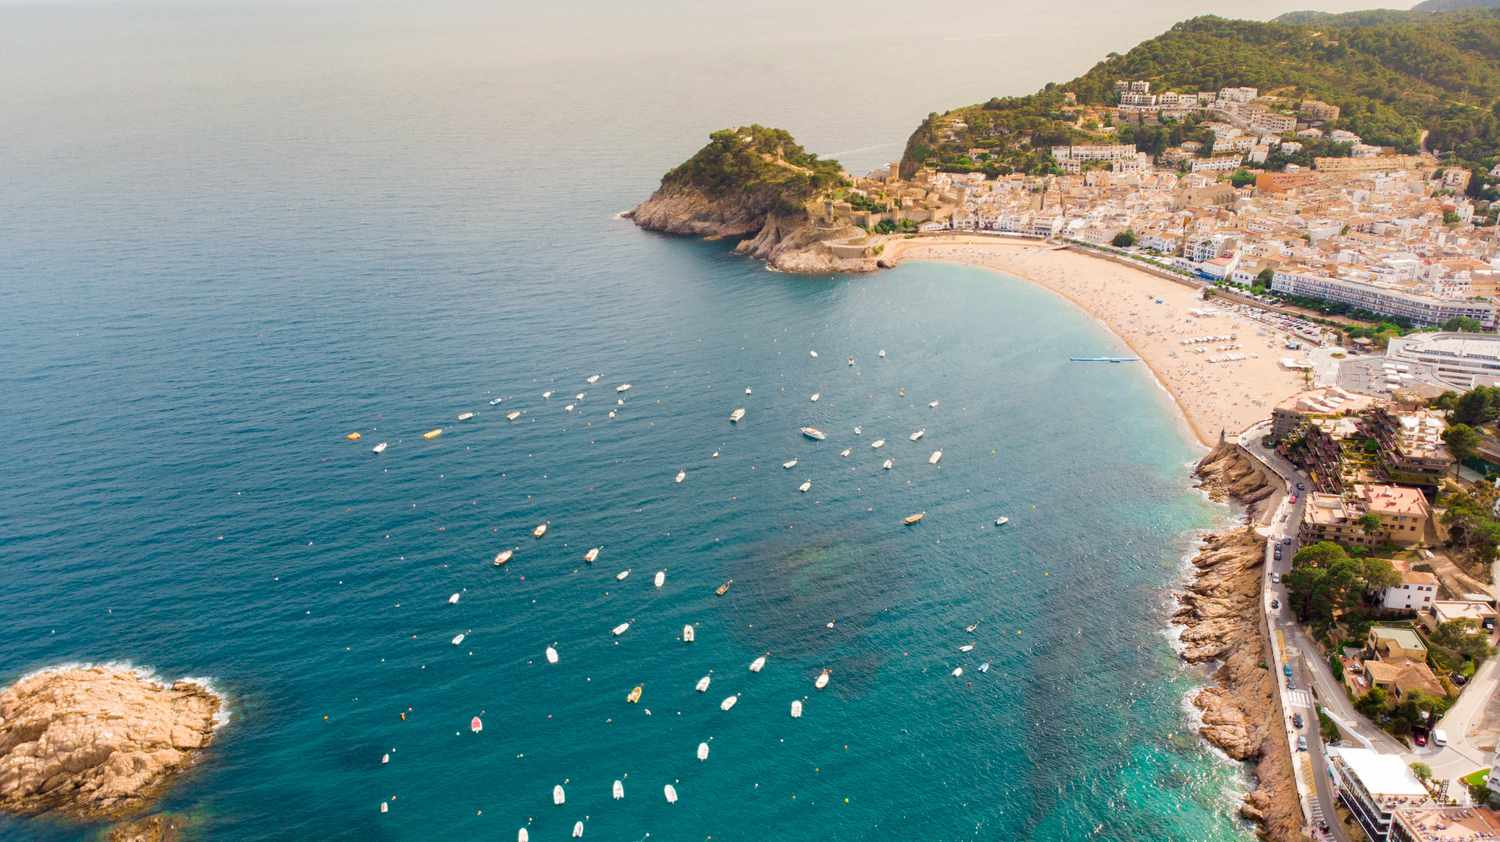 Aerial view of the seaside town of Tossa de Mar, Spain